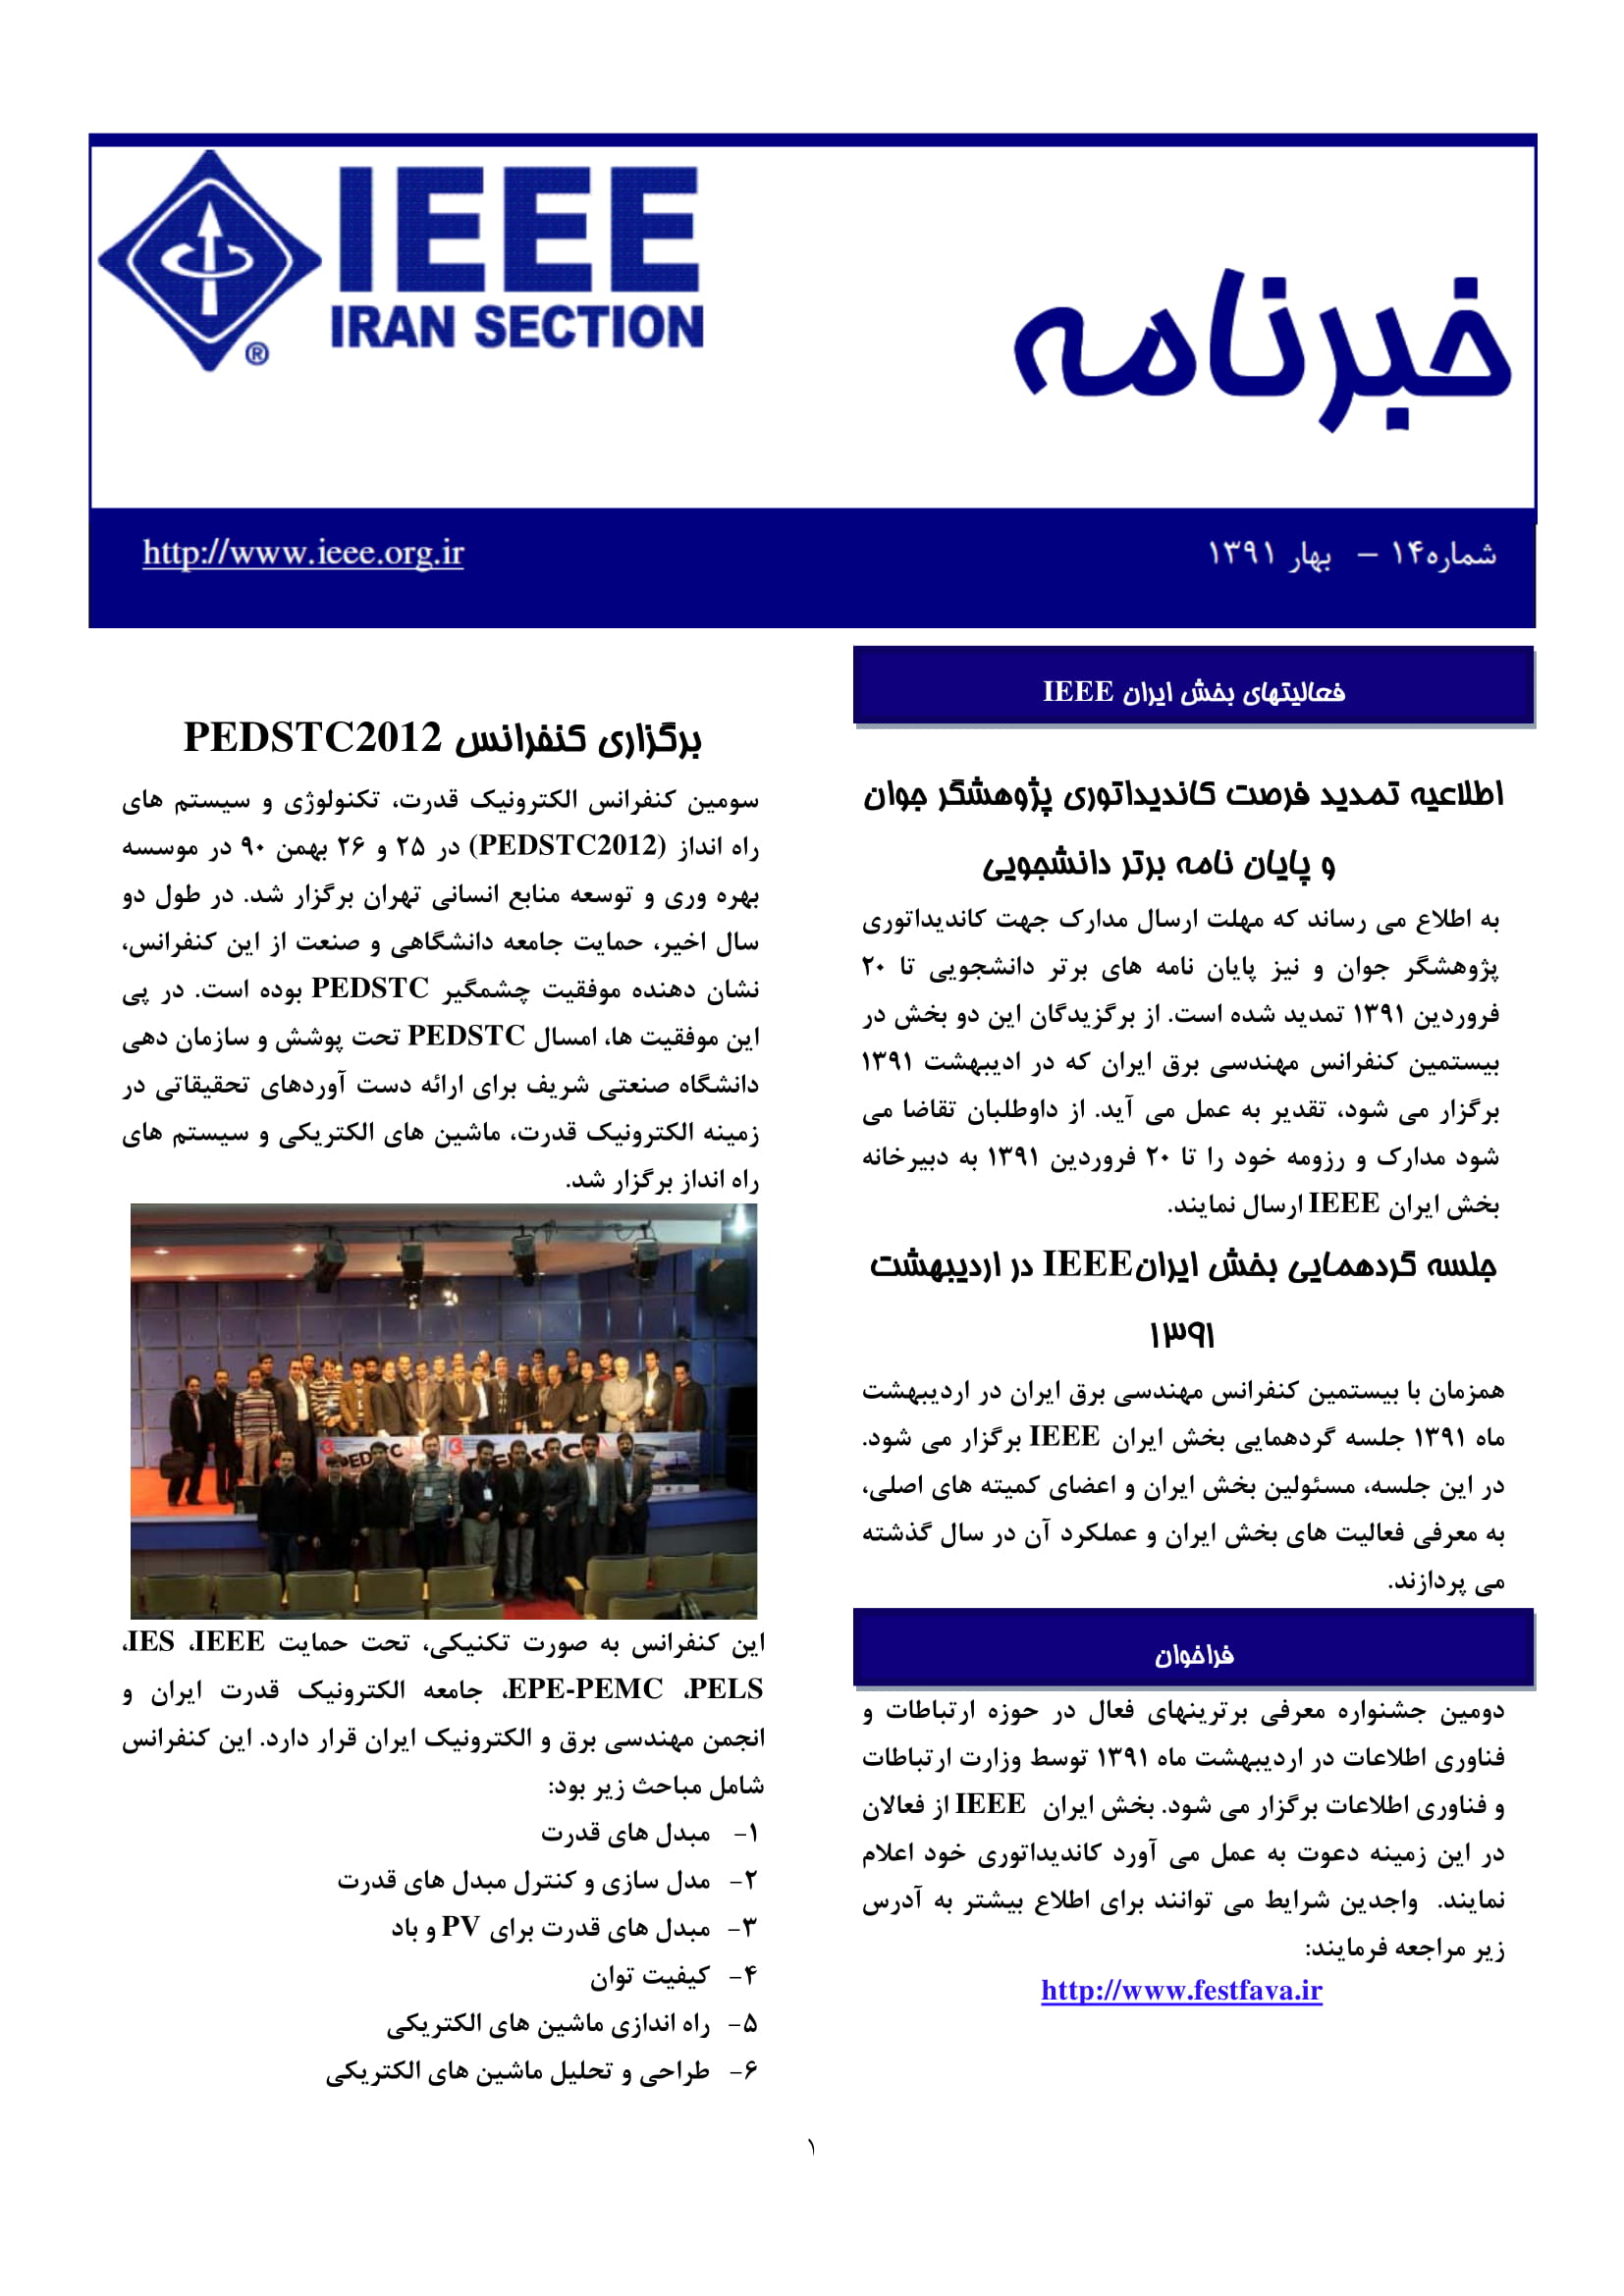 IEEE-Iran-Section_Newsletter_Spring_1391_No.14-1